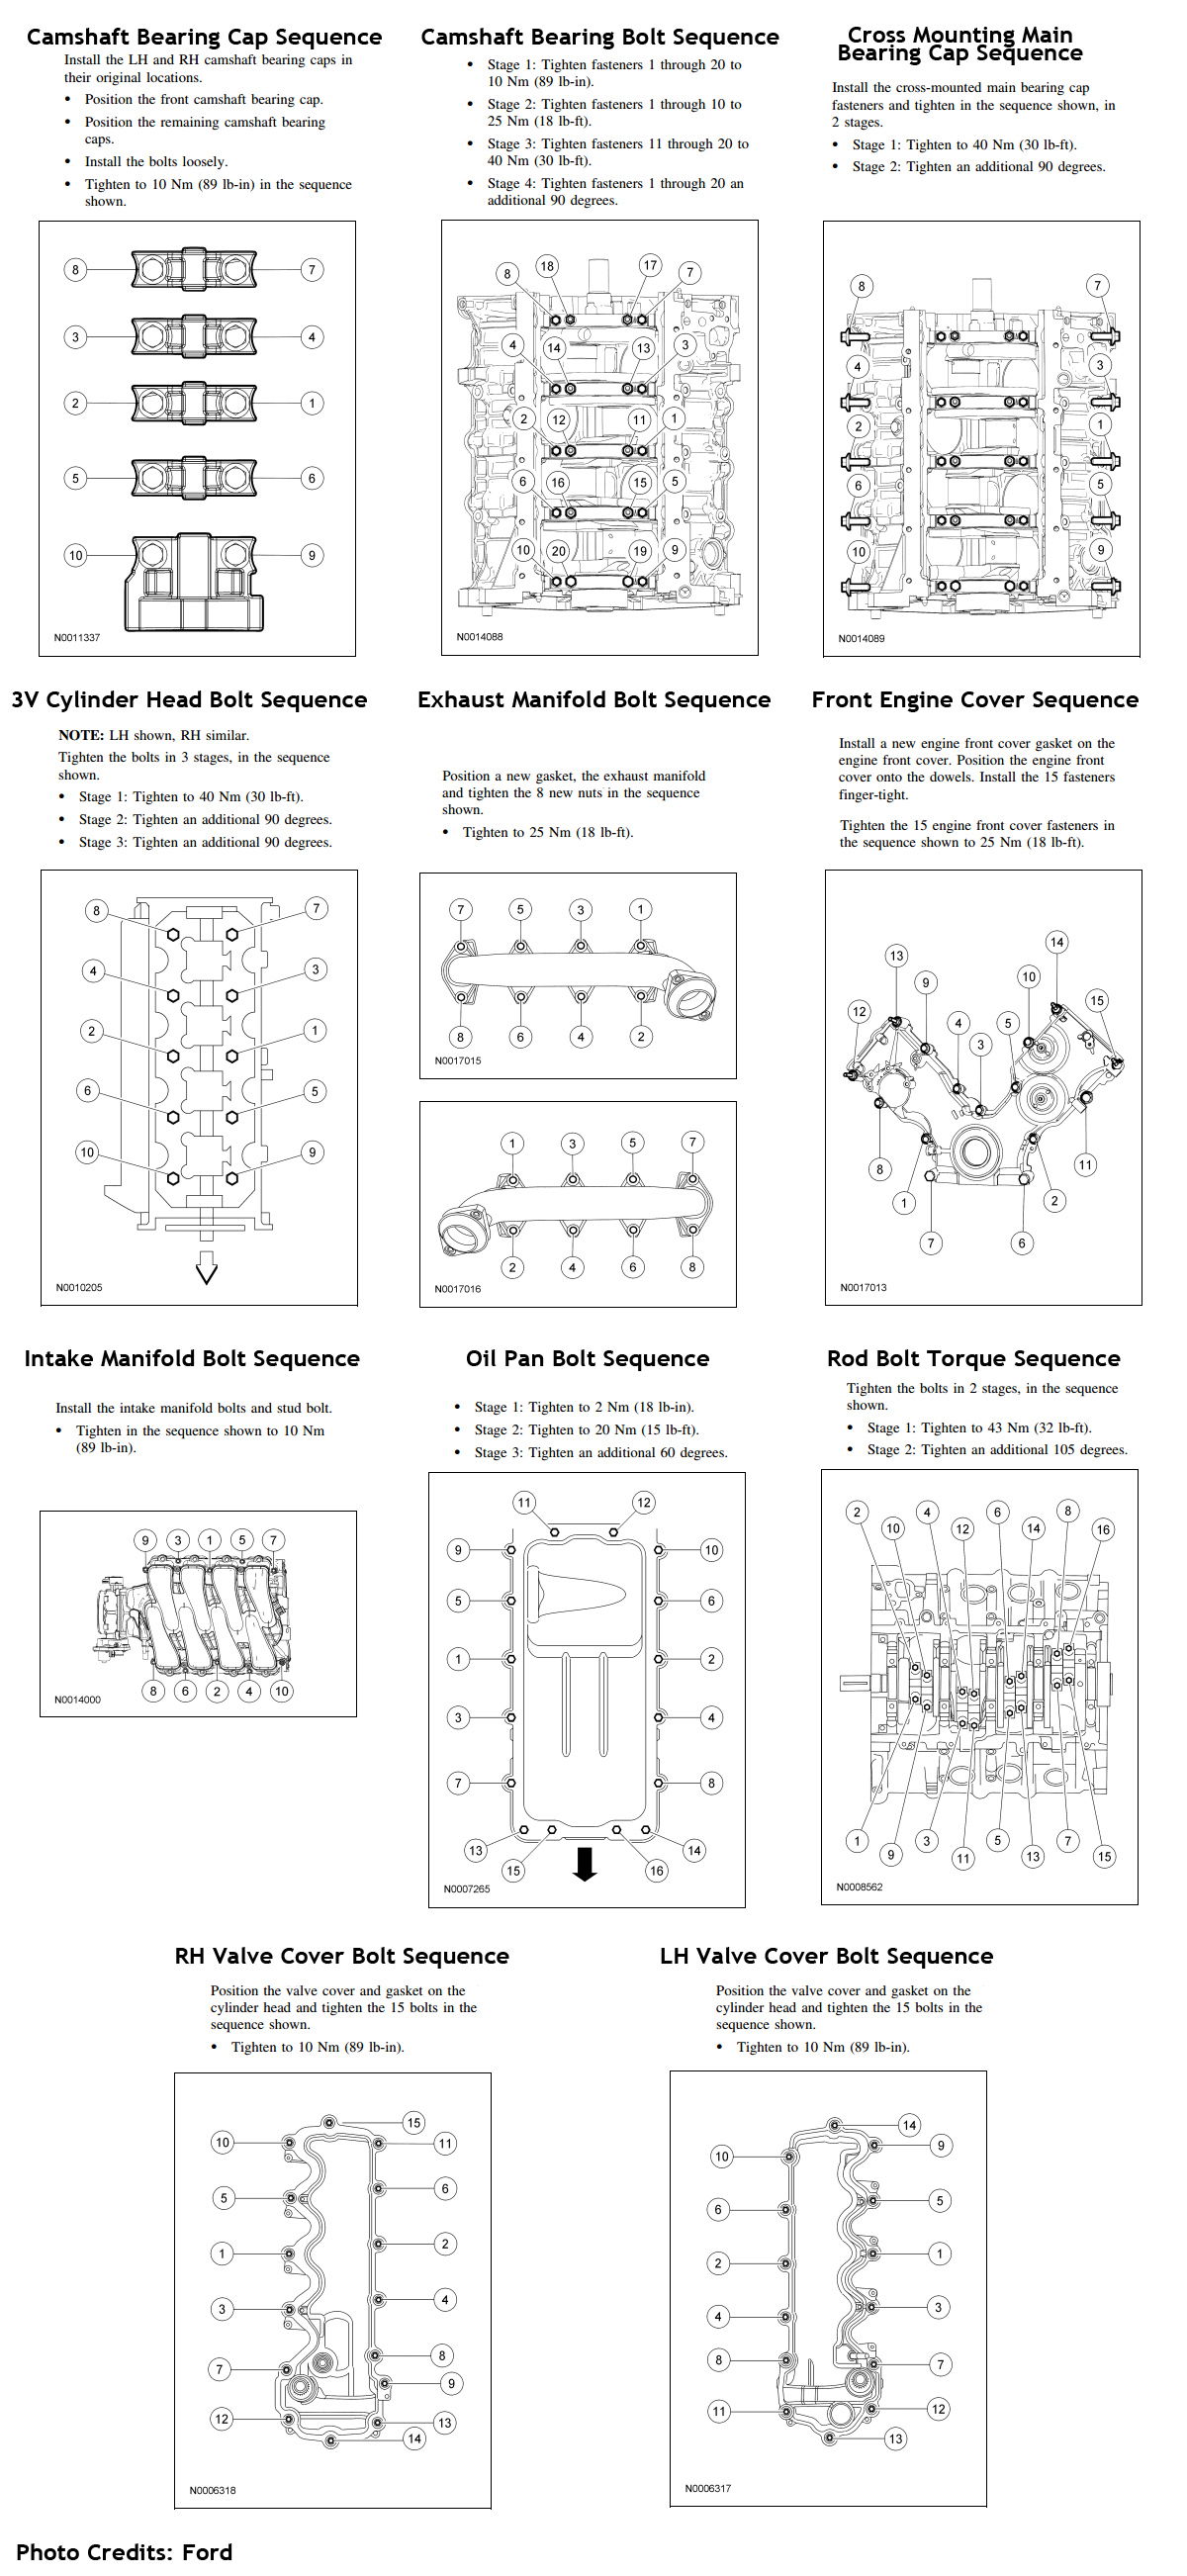 1988 ford 302 engine diagram 1988 ford mustang engine